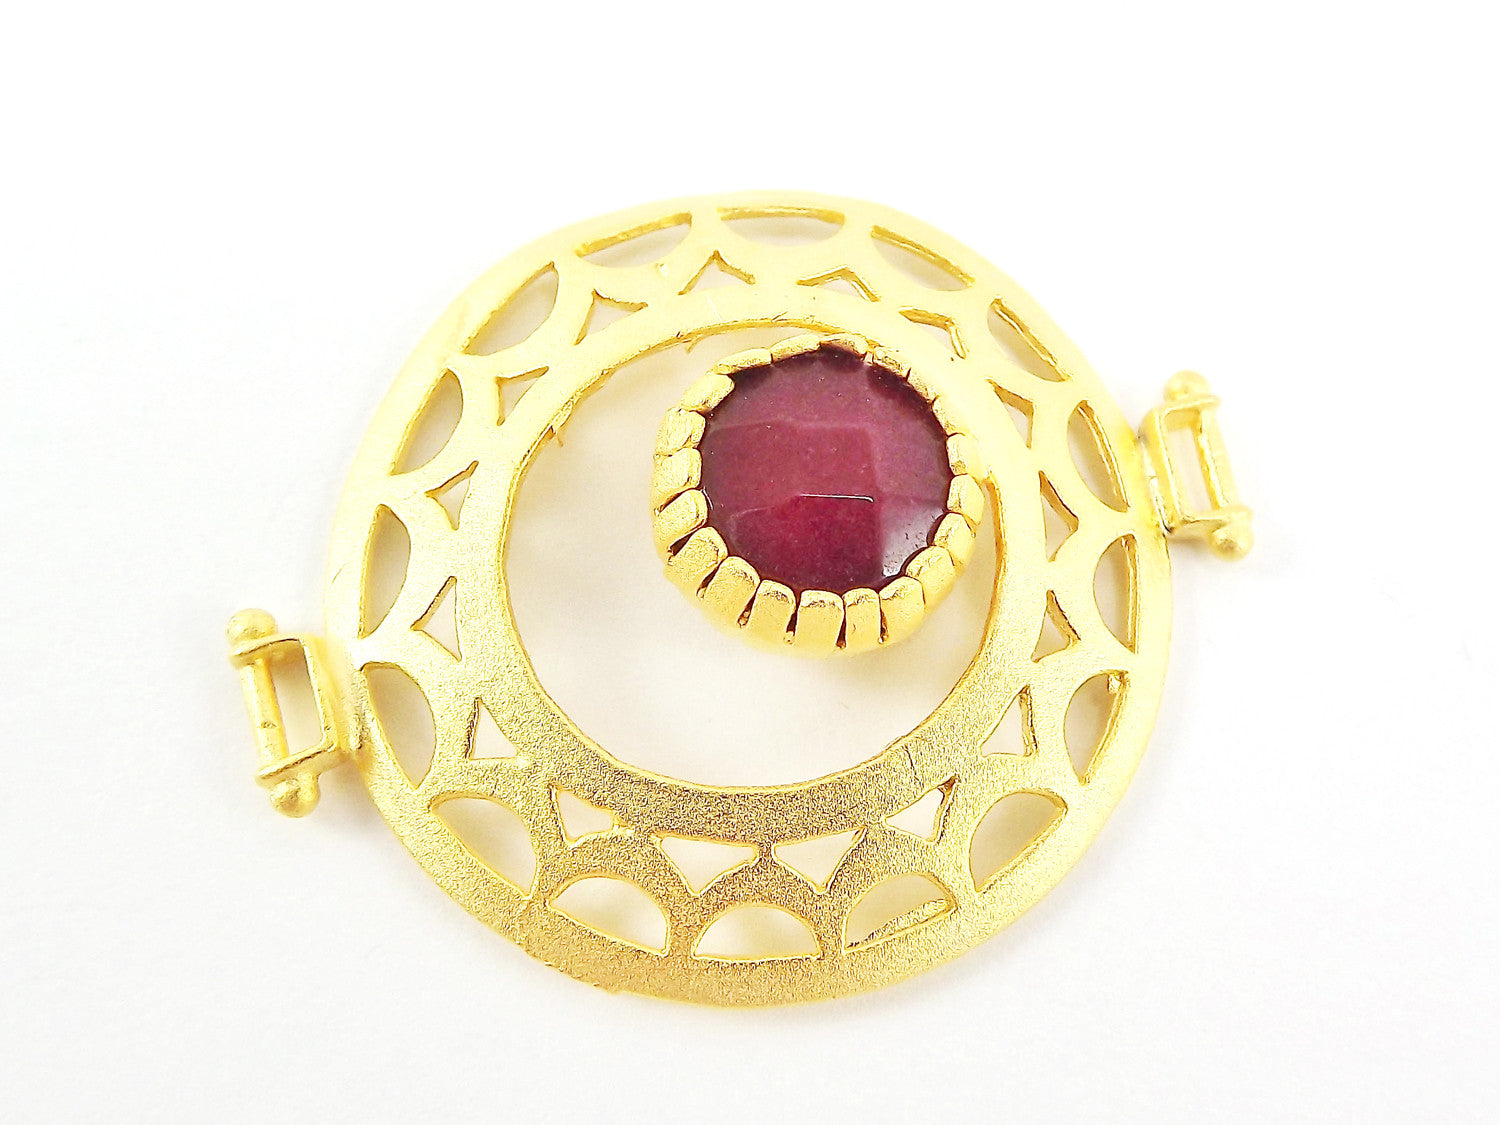 Garnet Red Jade Stone Fretworked Circle Connector Pendant - 22k Matte Gold Plated - 1PC